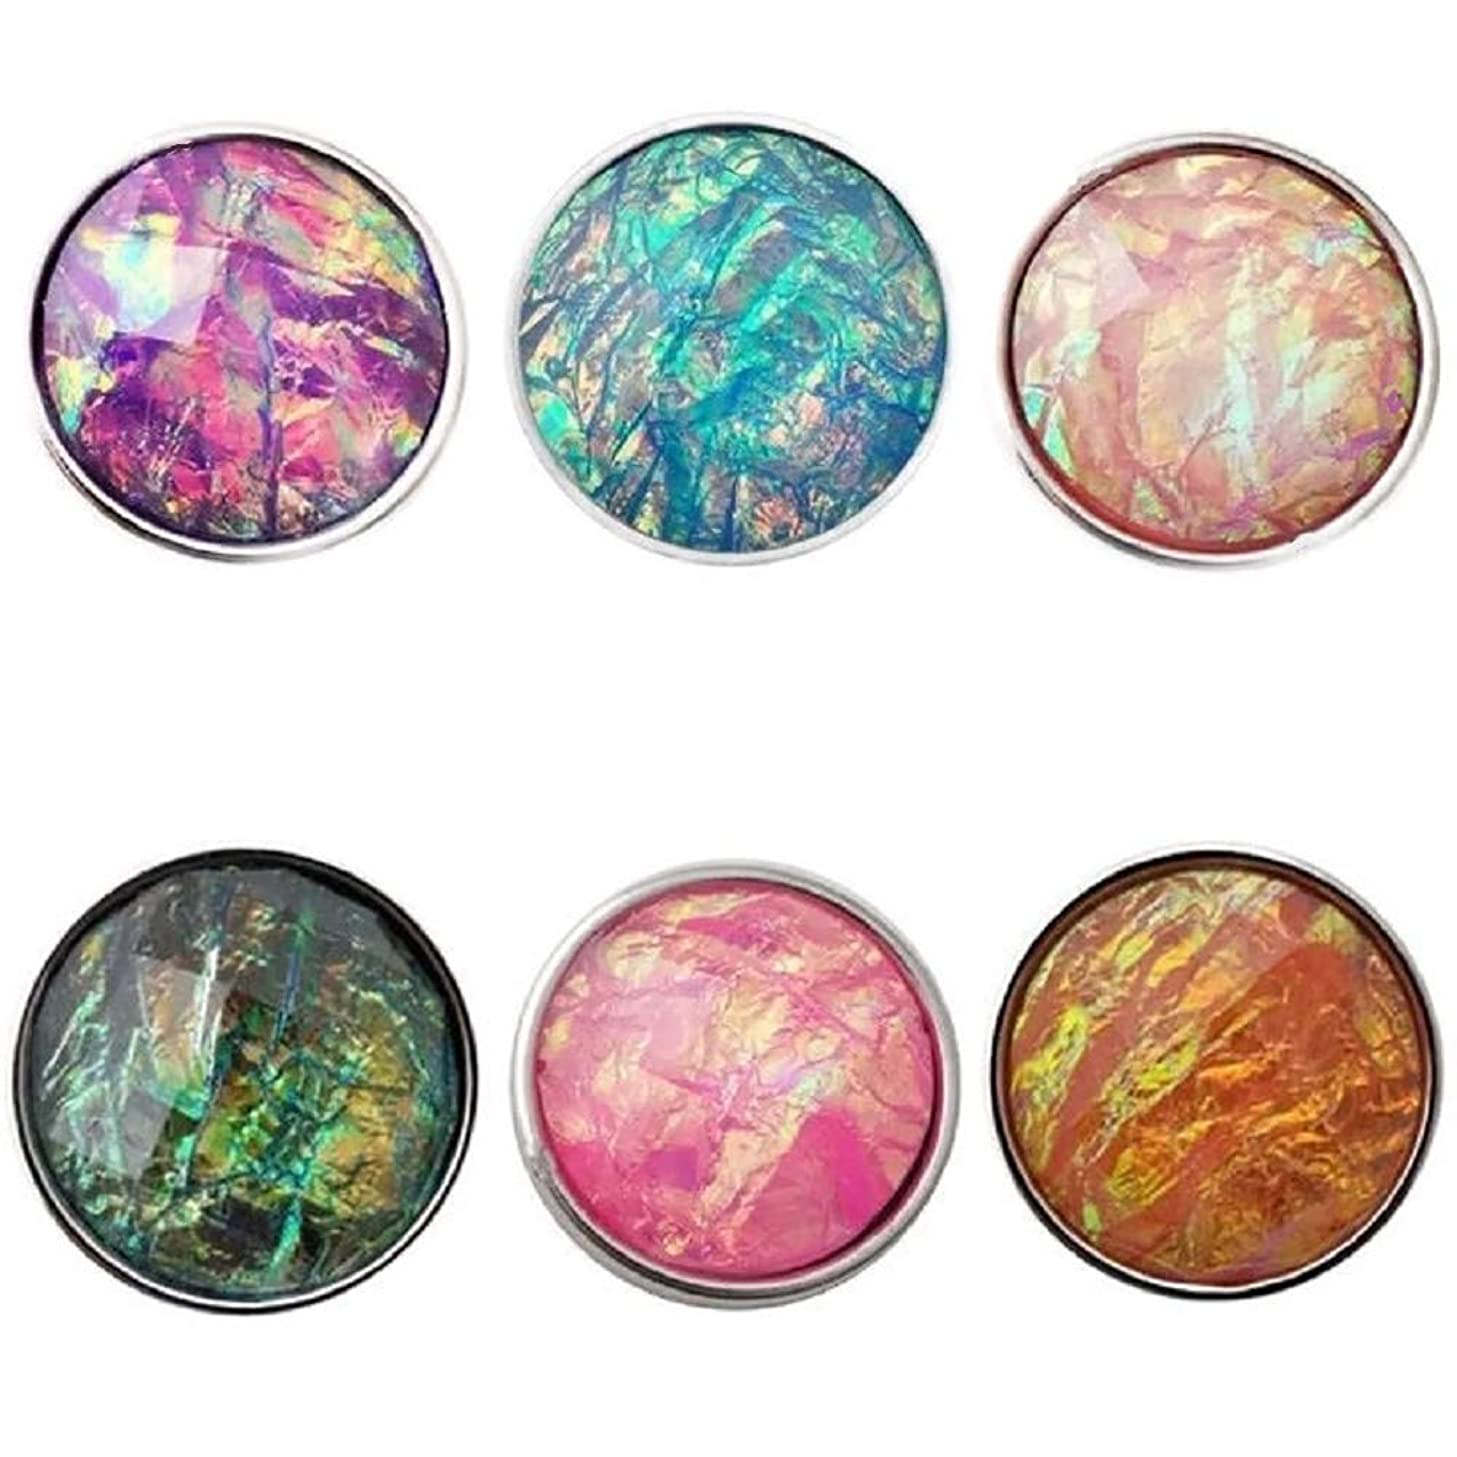 Pizazz Studios 6 Faceted Iridescent Snap Charms 18mm